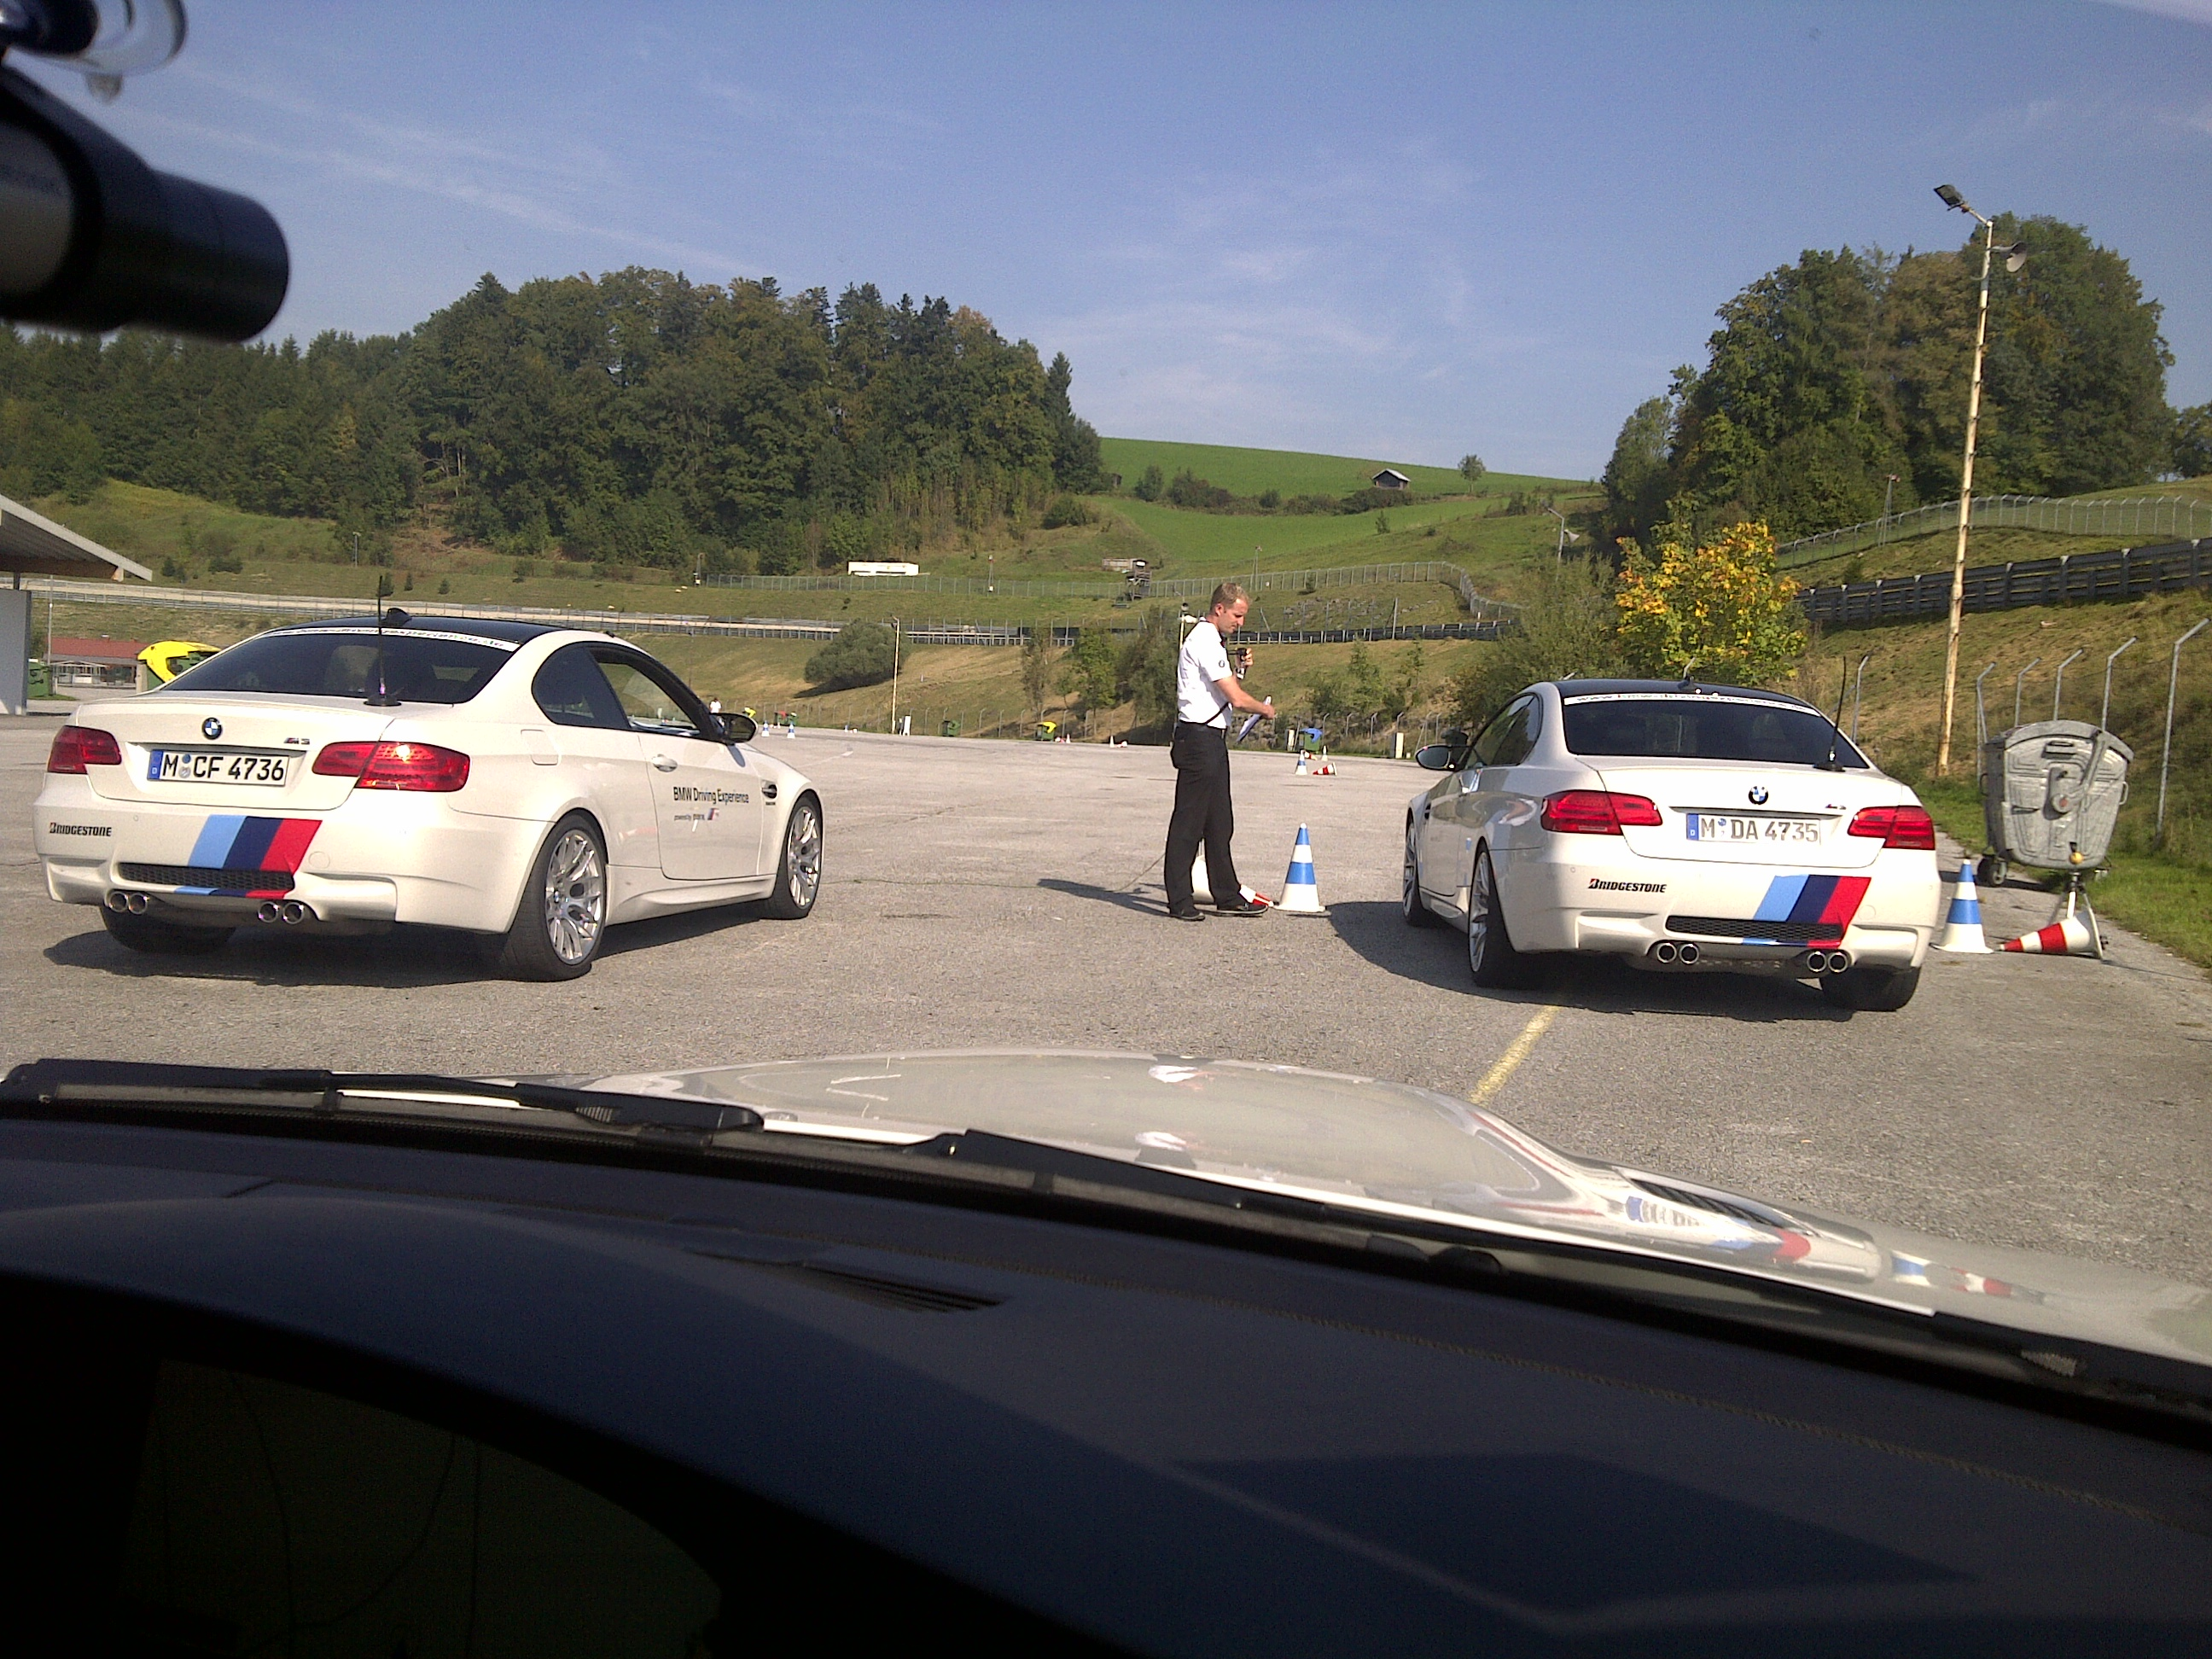 Saltzburgring [With the new BMW M5 F10 Twin Turbo chasing BMW M3 Competition Package]-img-20110927-00567.jpg